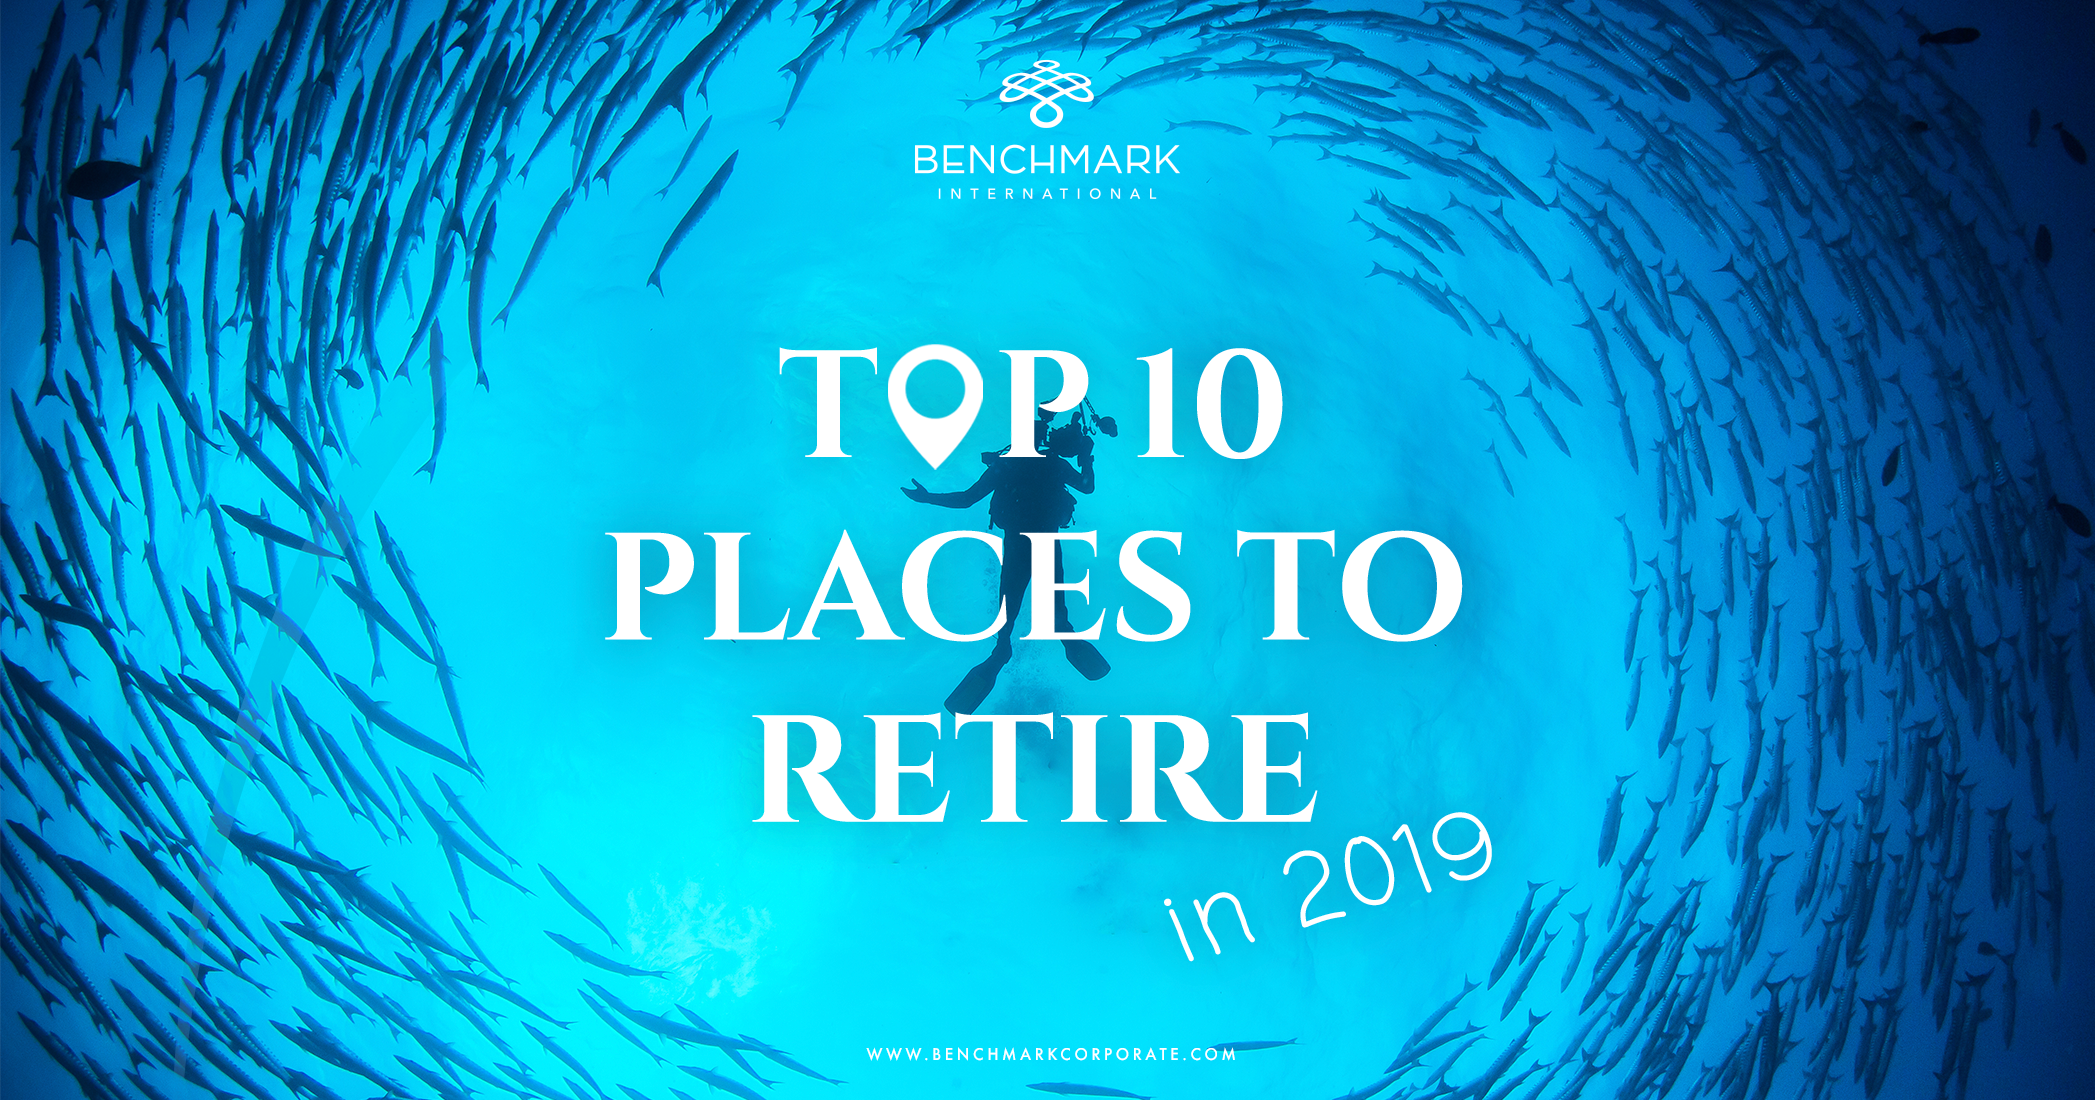 Top 10 Places to Retire in 2019